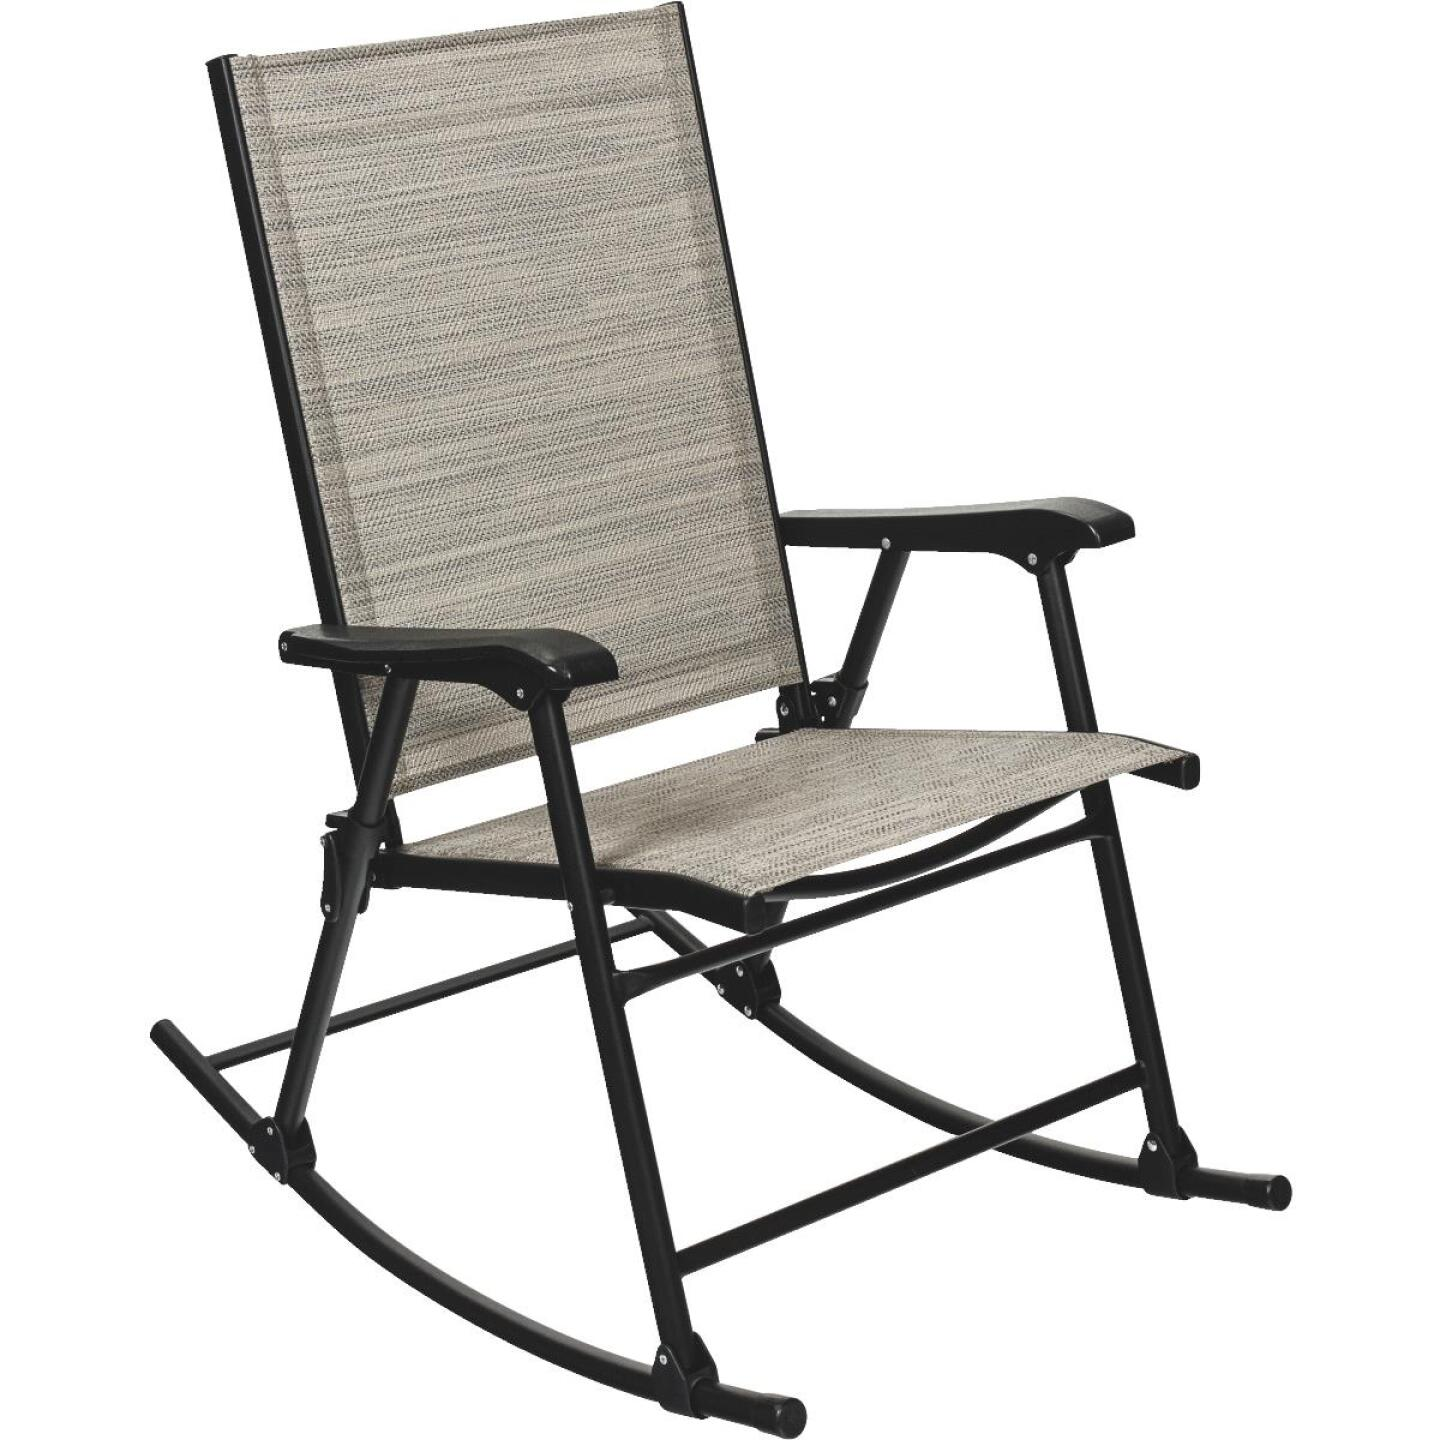 Outdoor Expressions Galveston Black Steel Rocking Chair Image 1